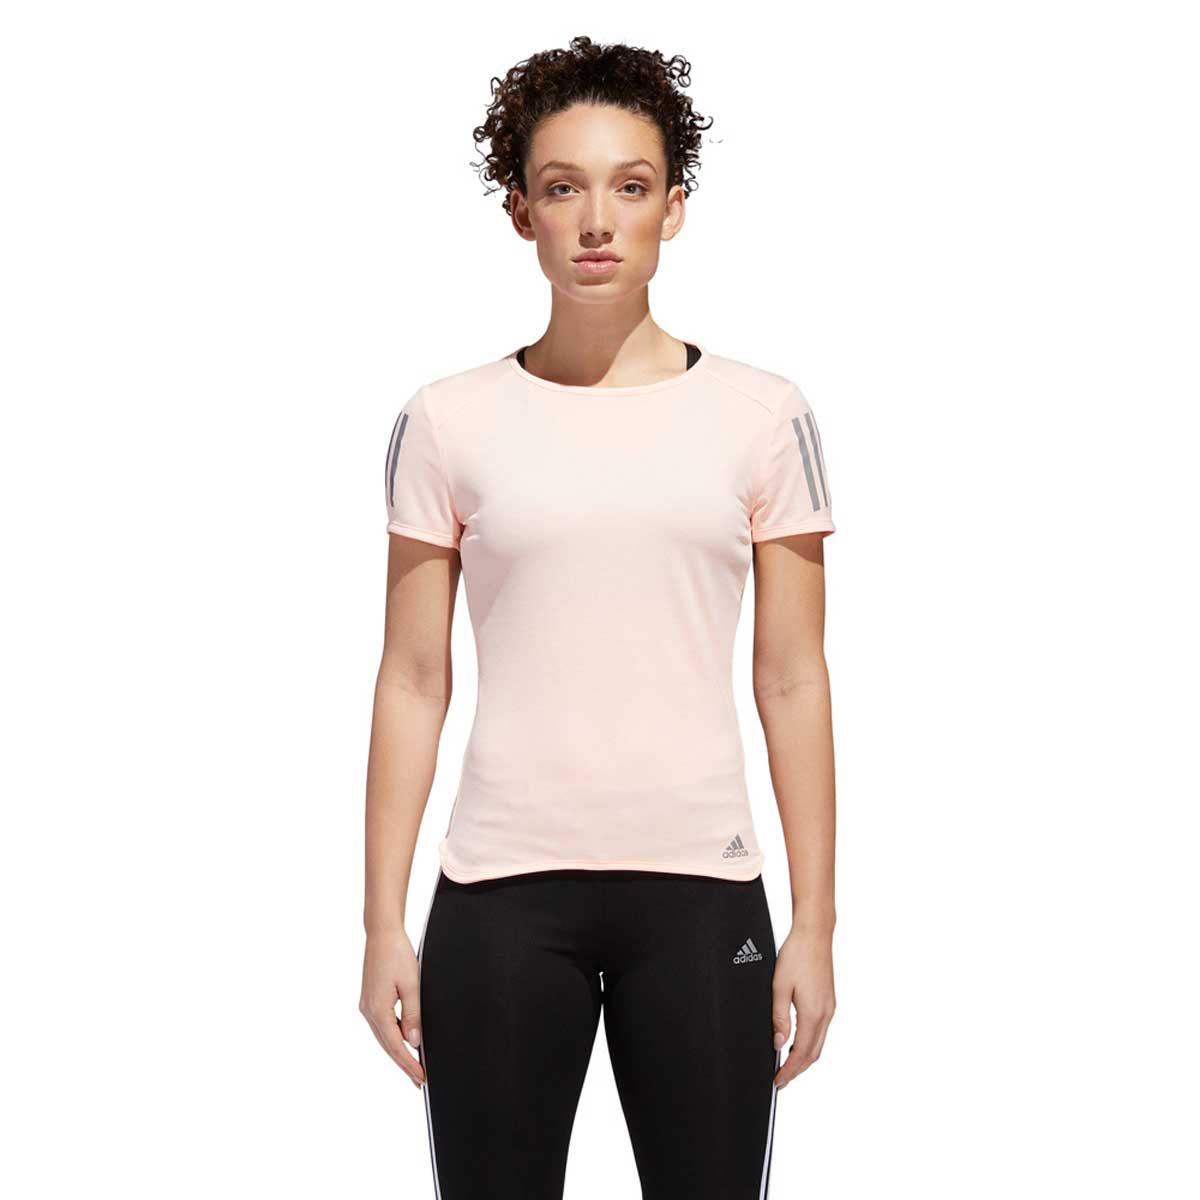 44a55ffb9 Buy Adidas Womens Round Neck T-Shirts (Cleora) Online at Lowest Price in  India